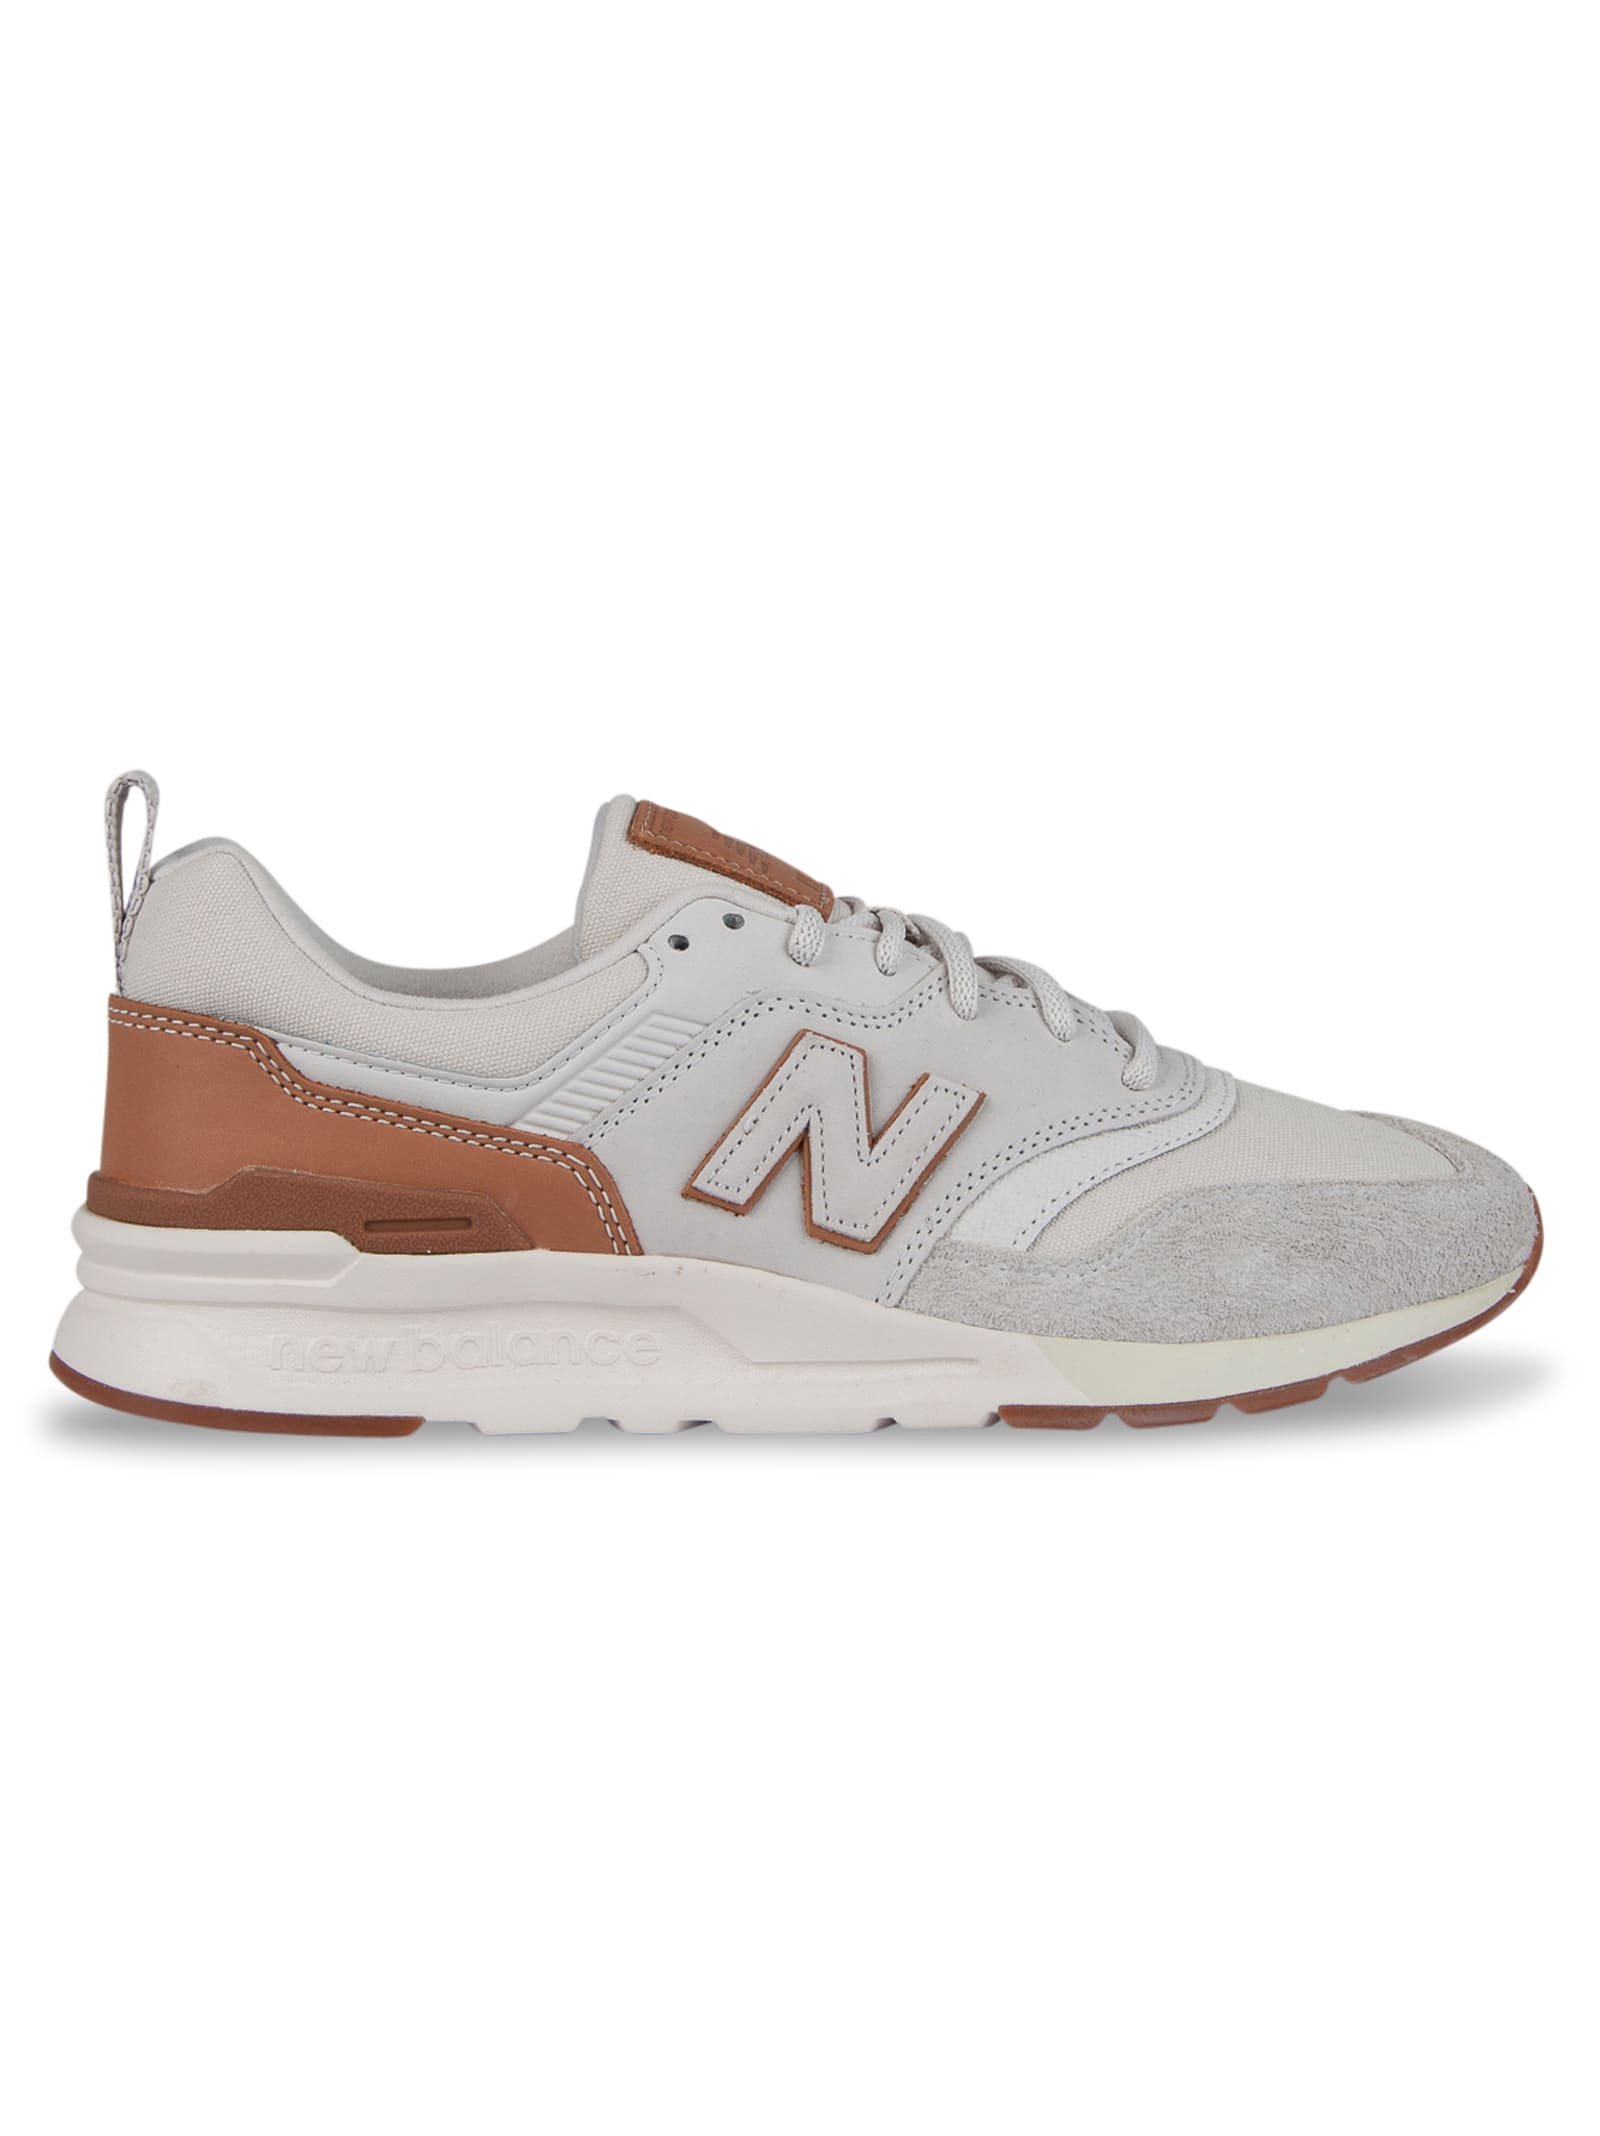 997h Lux 10 Year Leather - White/brown